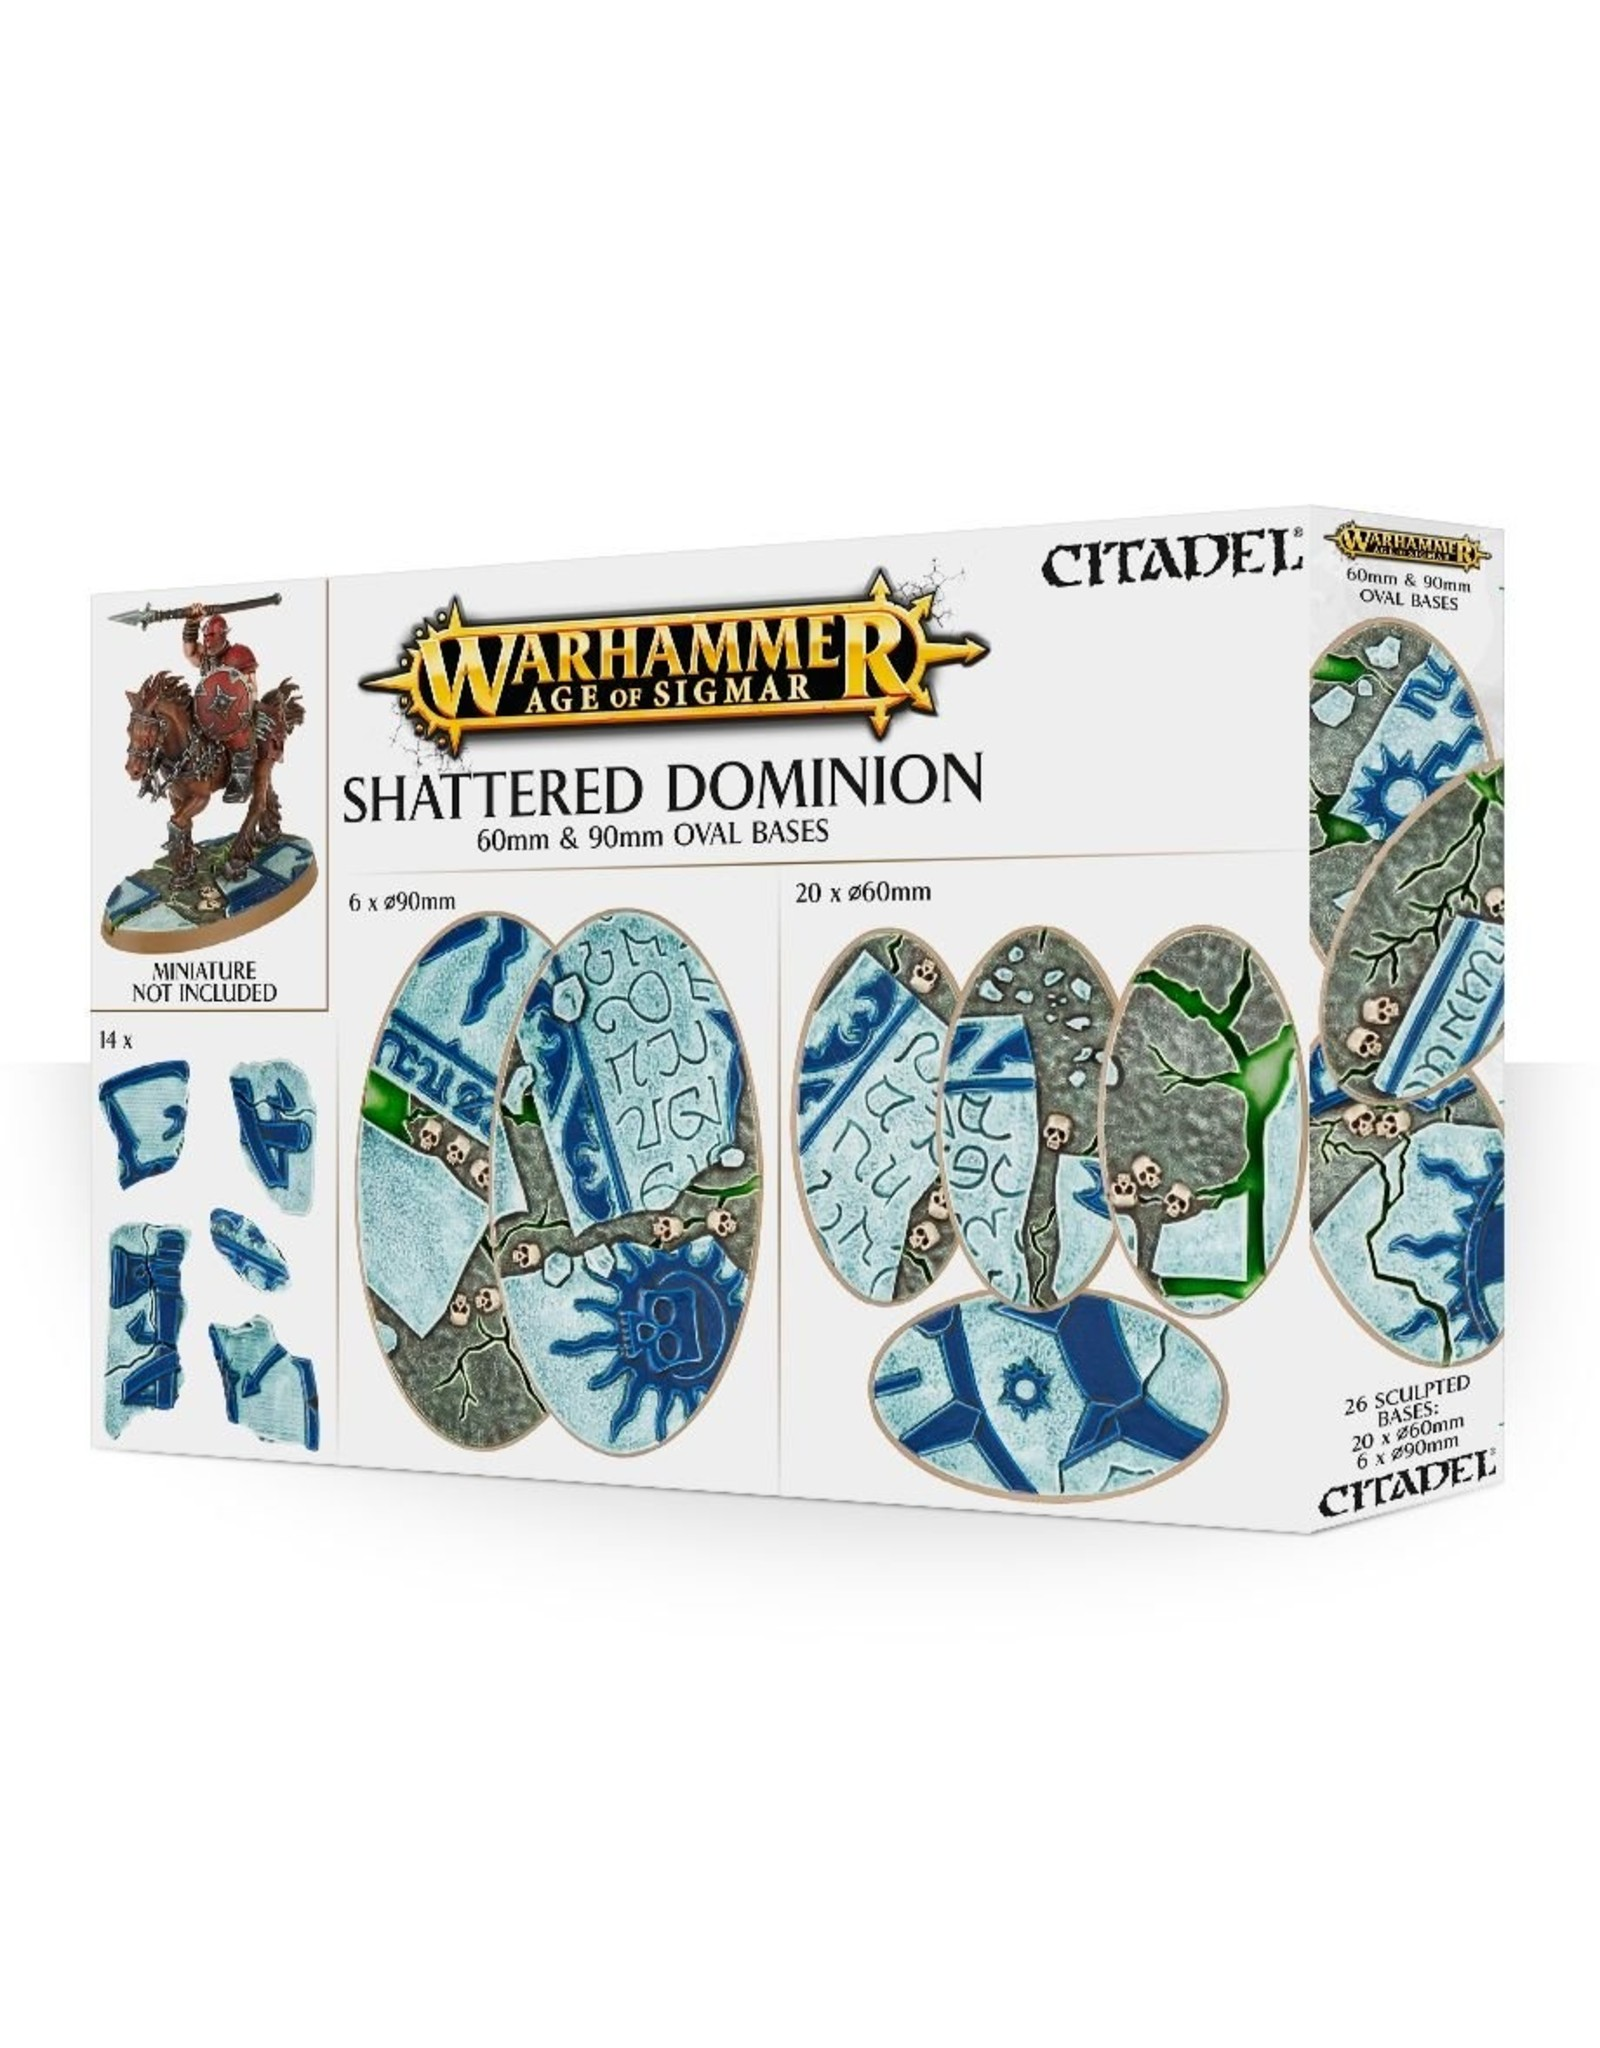 Warhammer Age of Sigmar: Shattered Dominion 60mm & 90mm Oval Bases